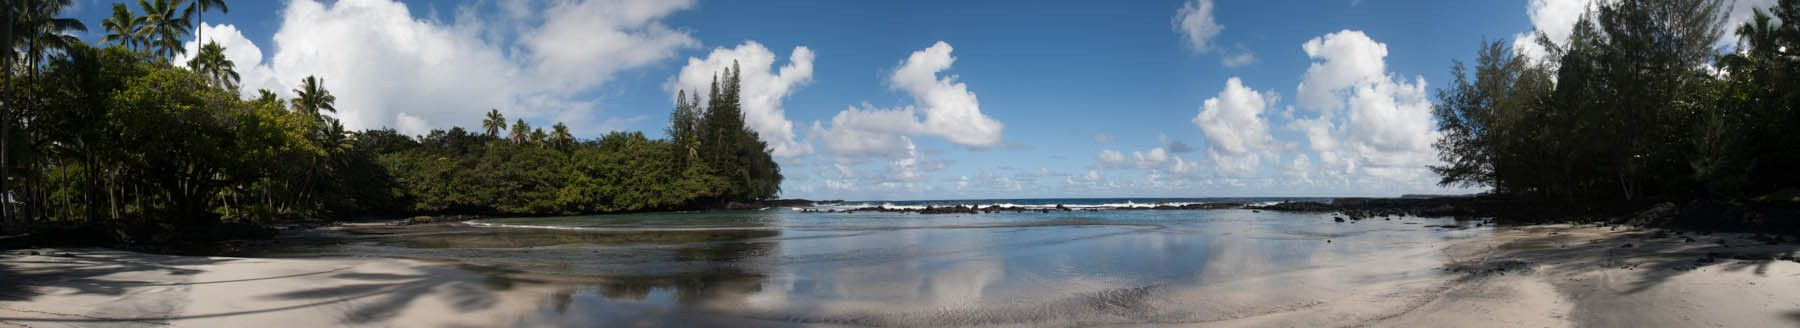 1shipman_beach_panorama1_edit.jpg